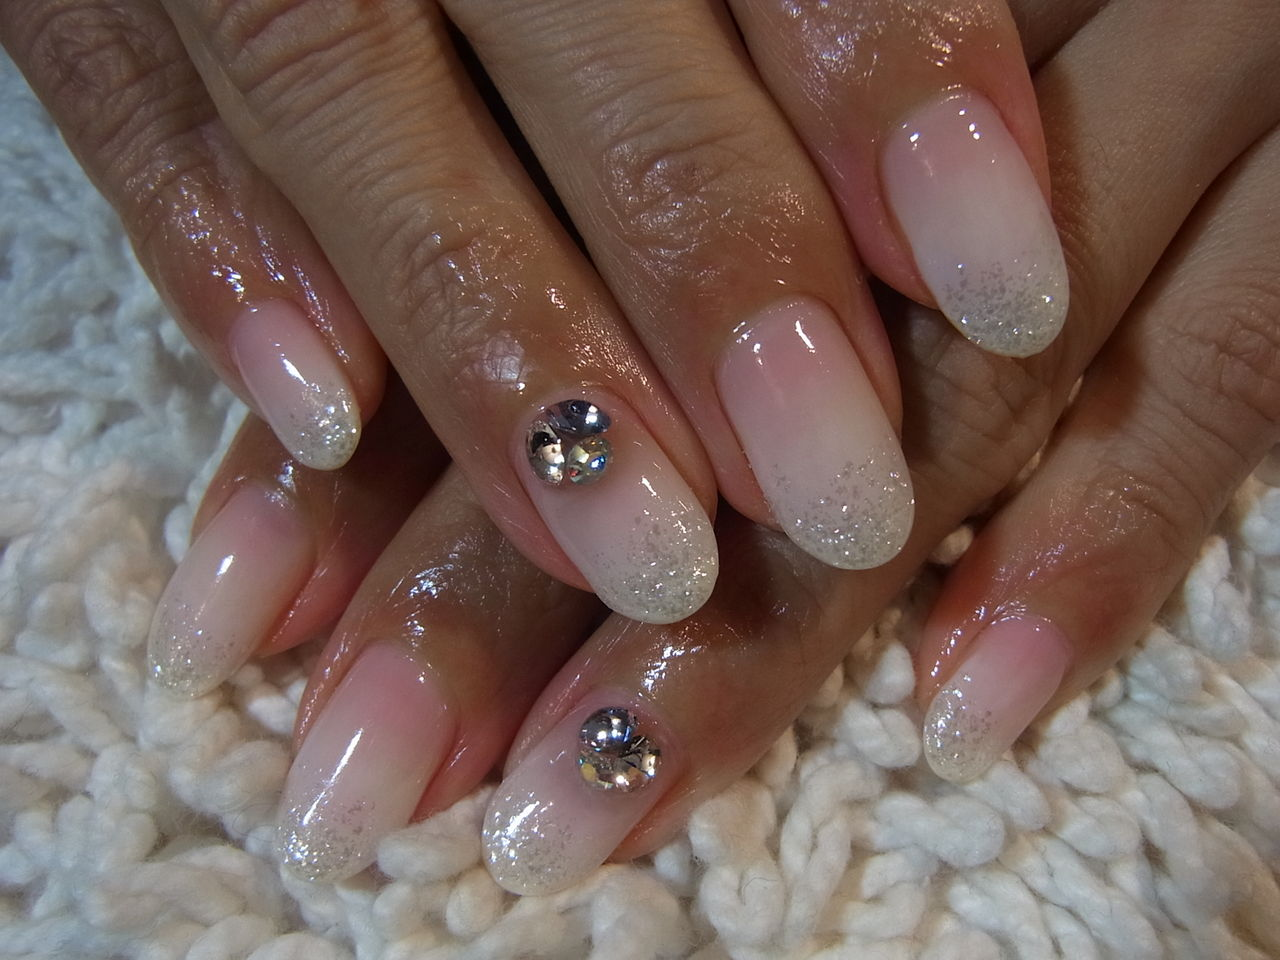 lauraleighhairdressing co furthermore 17479945 Grand Opening Discount as well Haircut Ex le 47 as well Acrylnagels in addition 375487687659085868. on nail salon